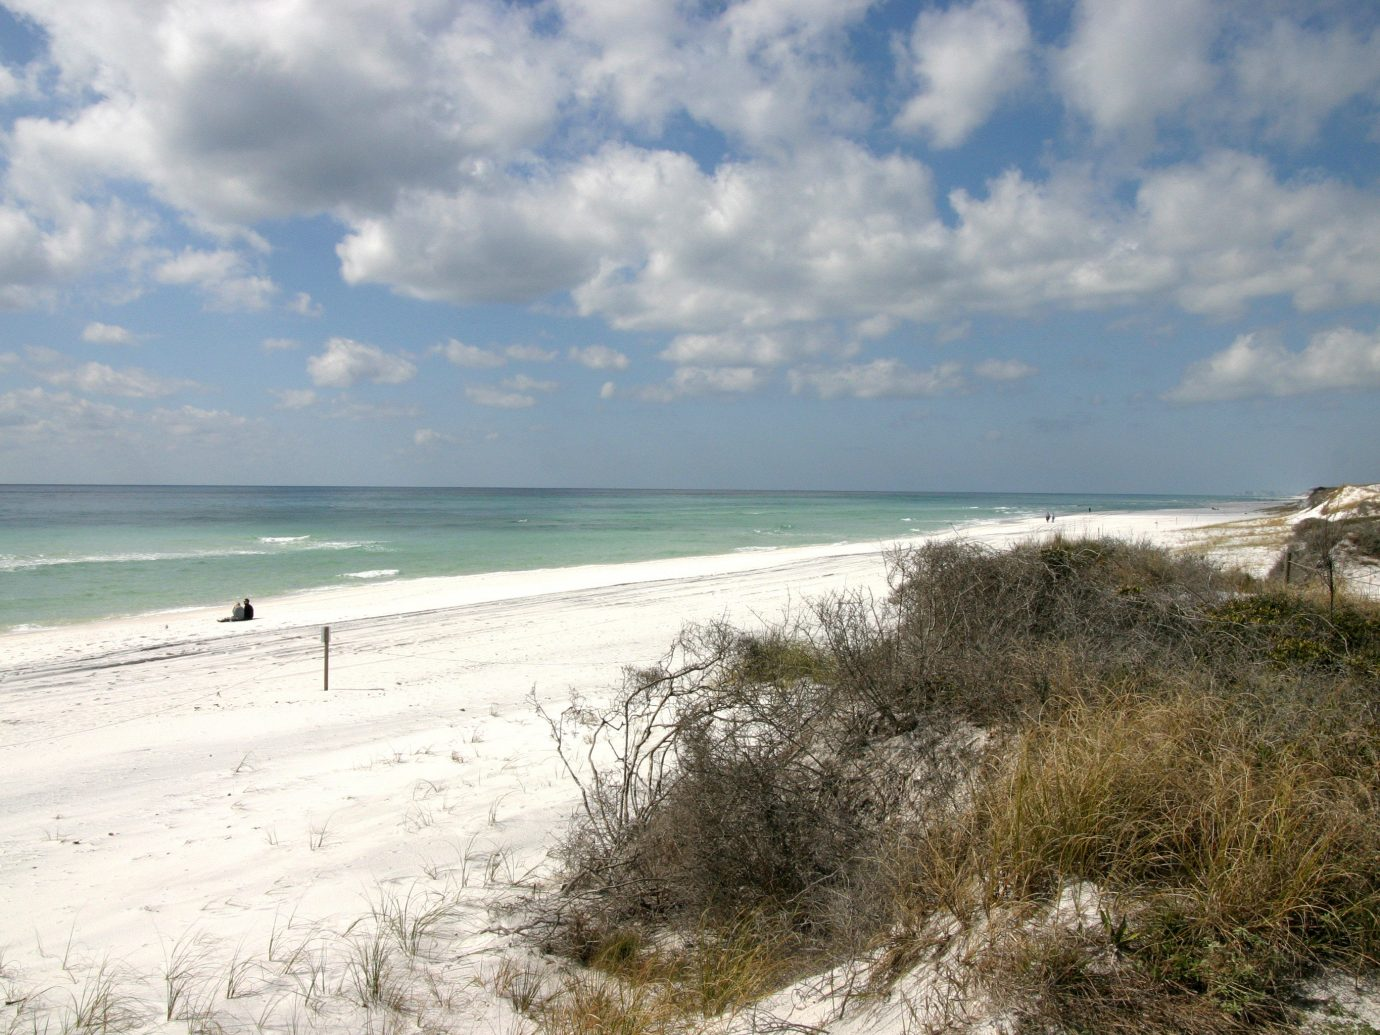 Grayton Beach in FLorida